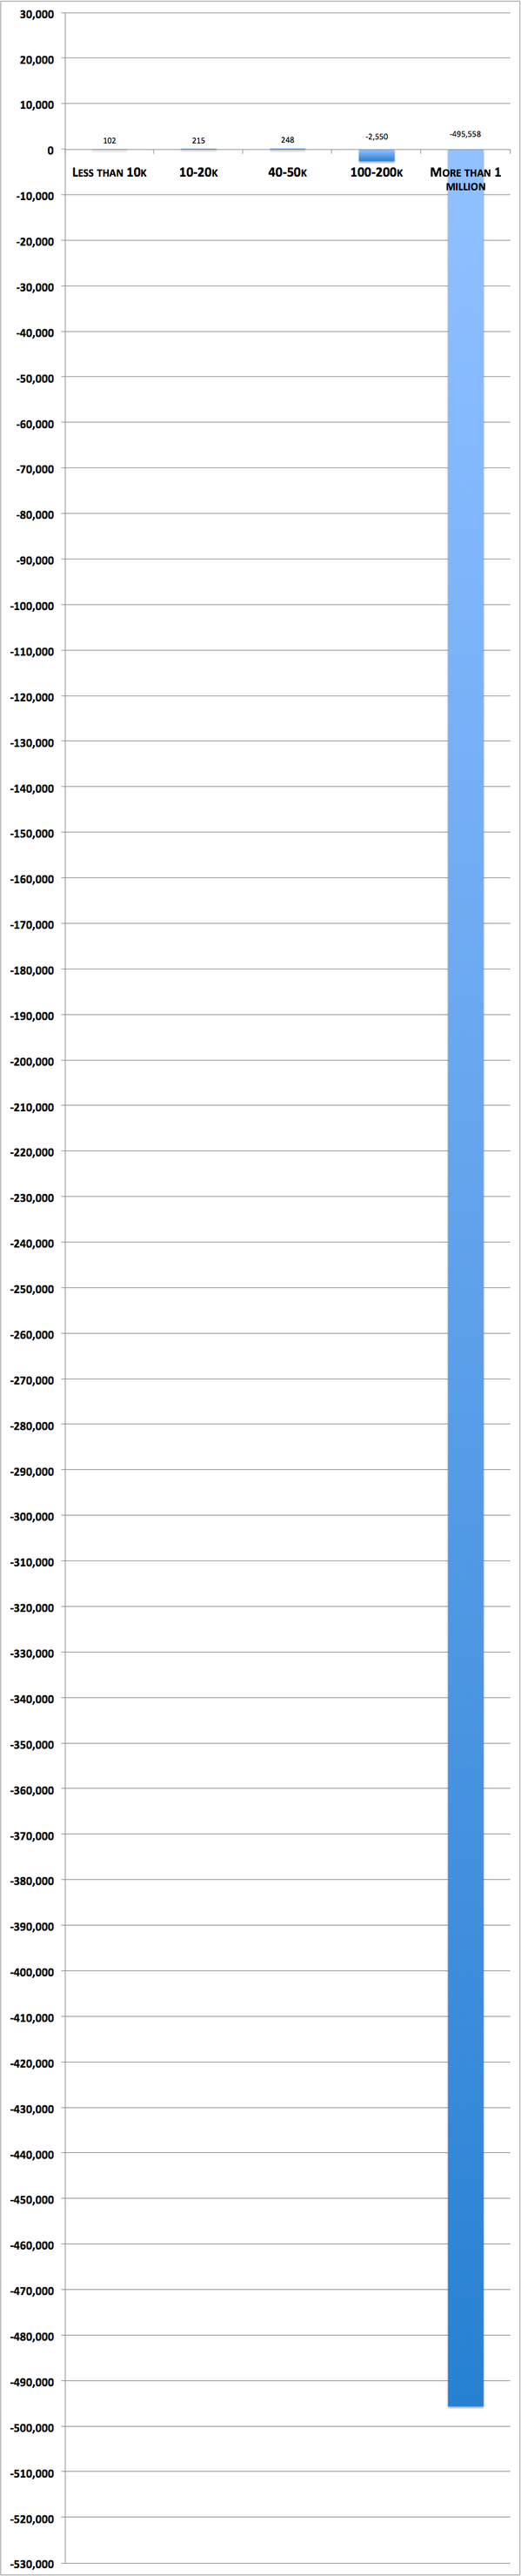 Thumbnail image for Chart1.png